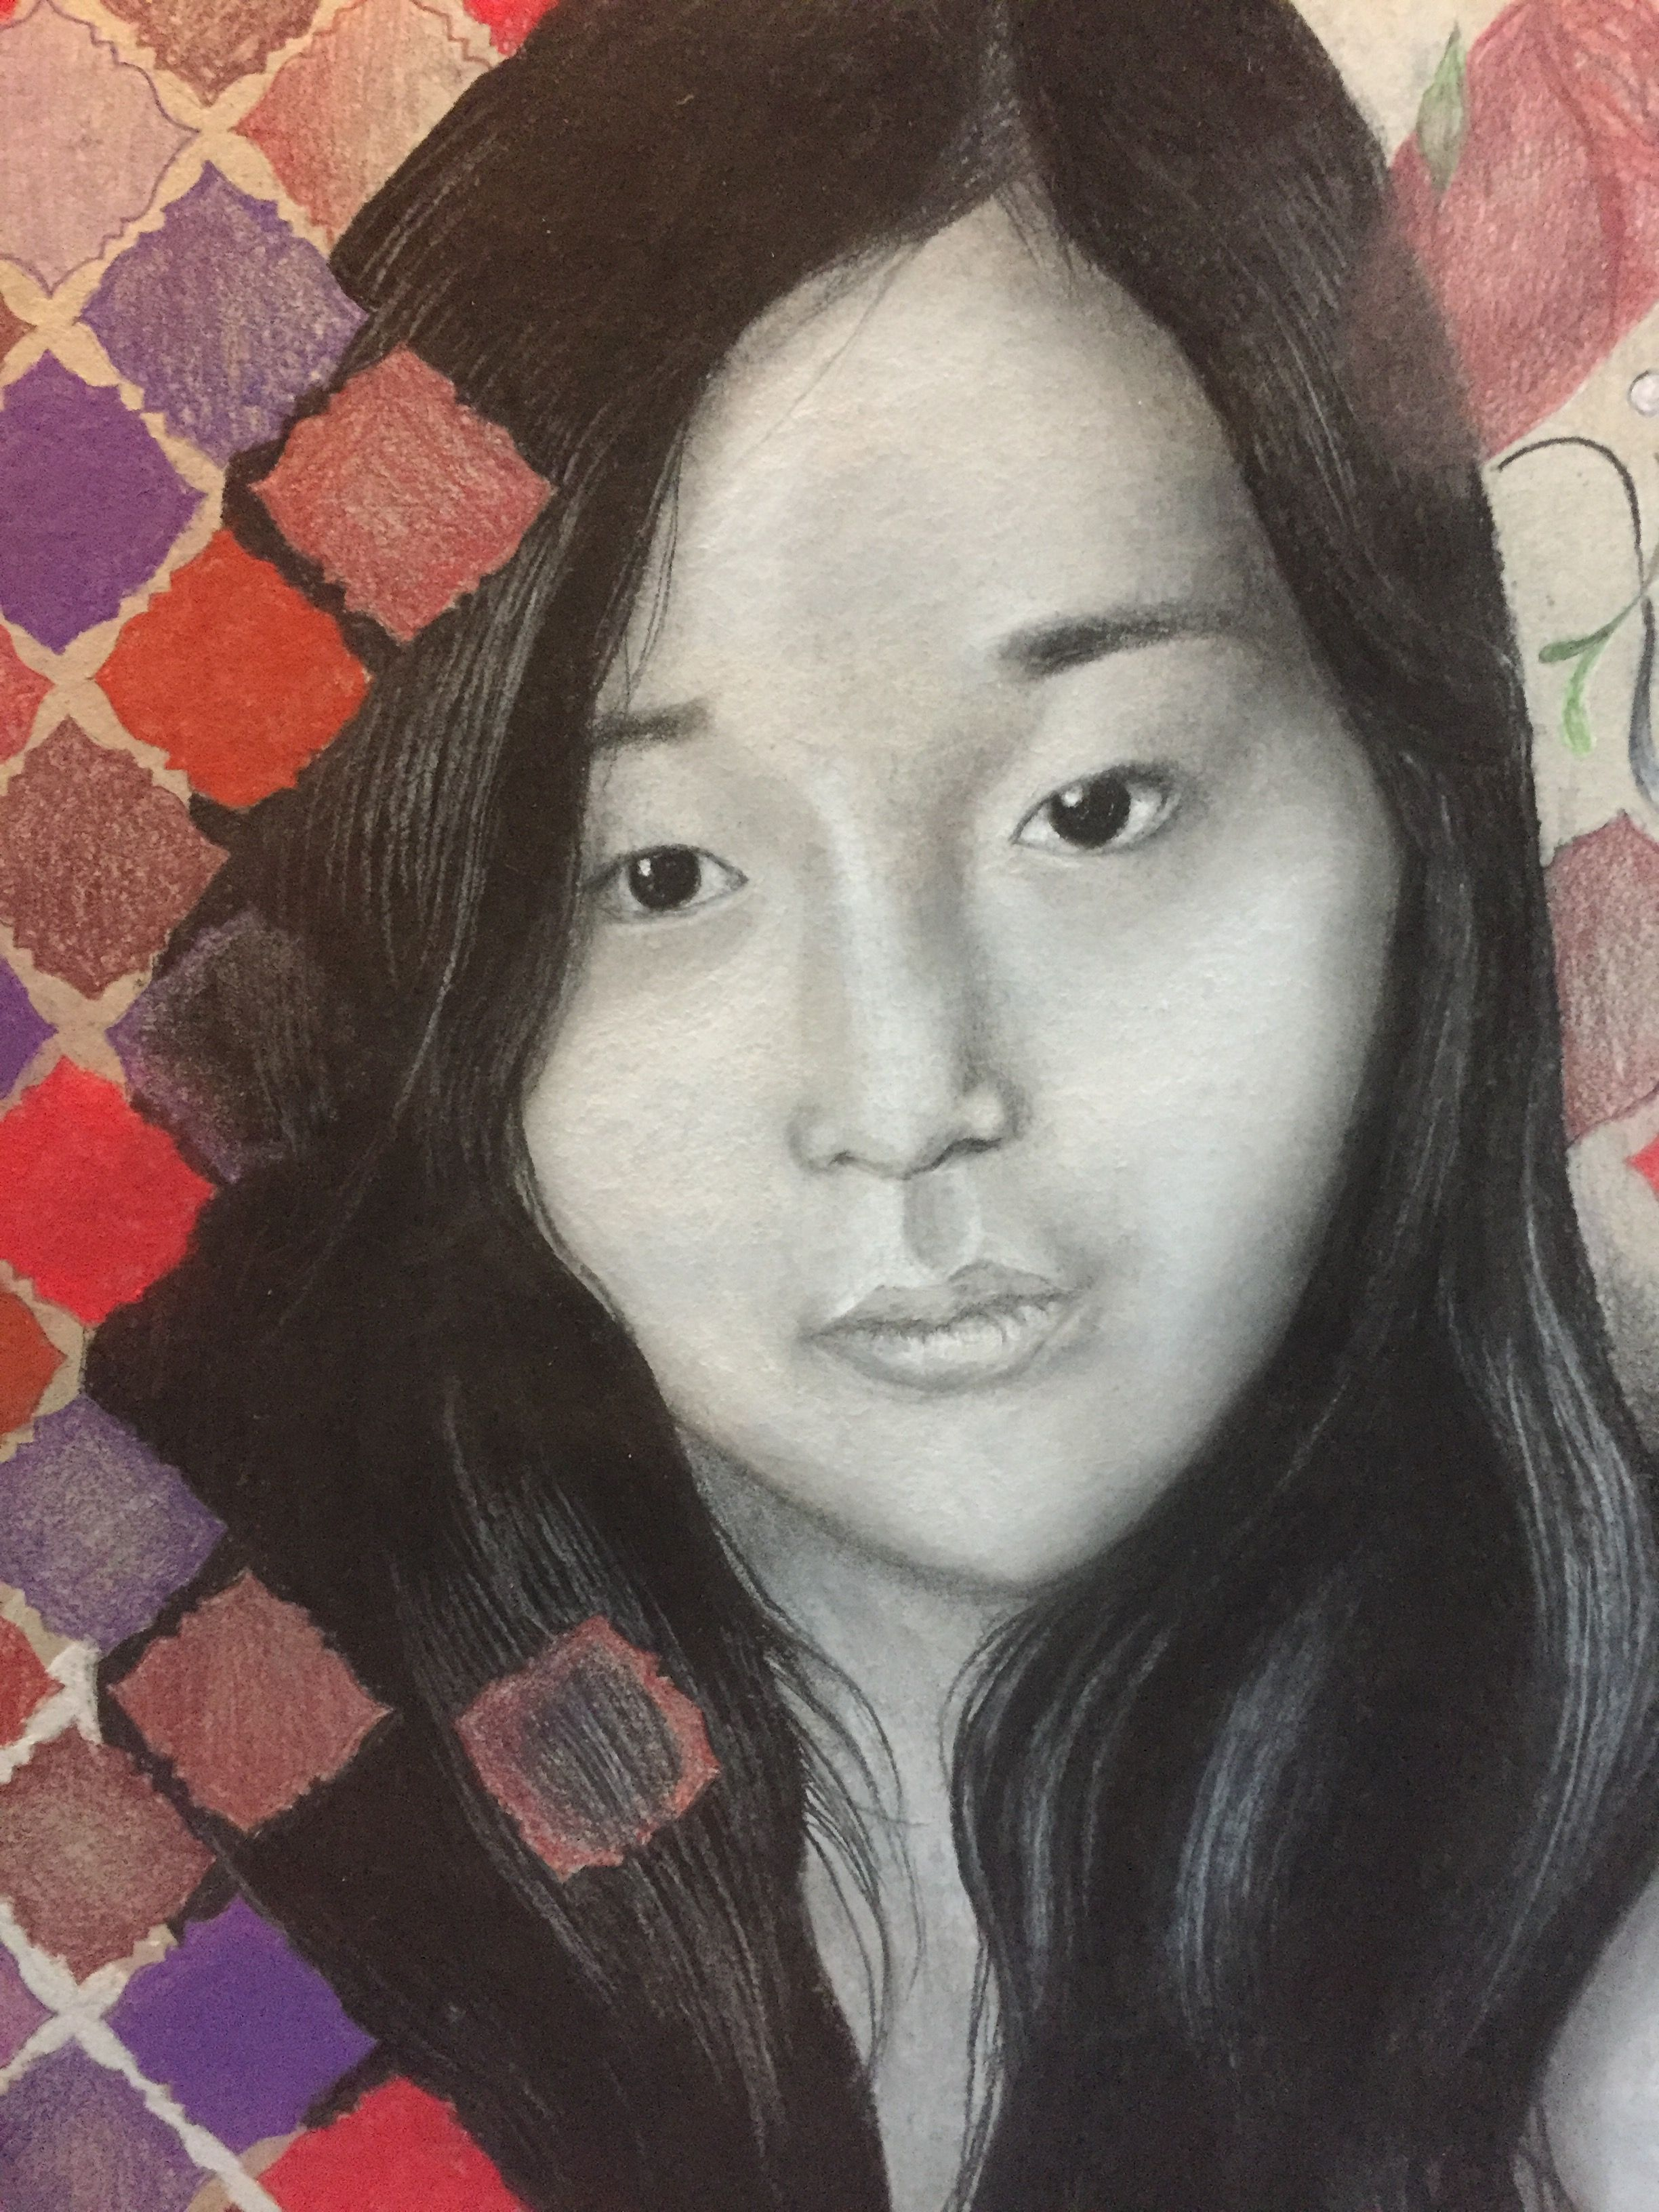 High School Art Class Level Ii Self Portrait Projects In Charcoal And Pastels Faces Were Monochromatic Wit Portrait Studio Art Lessons High School Portraits